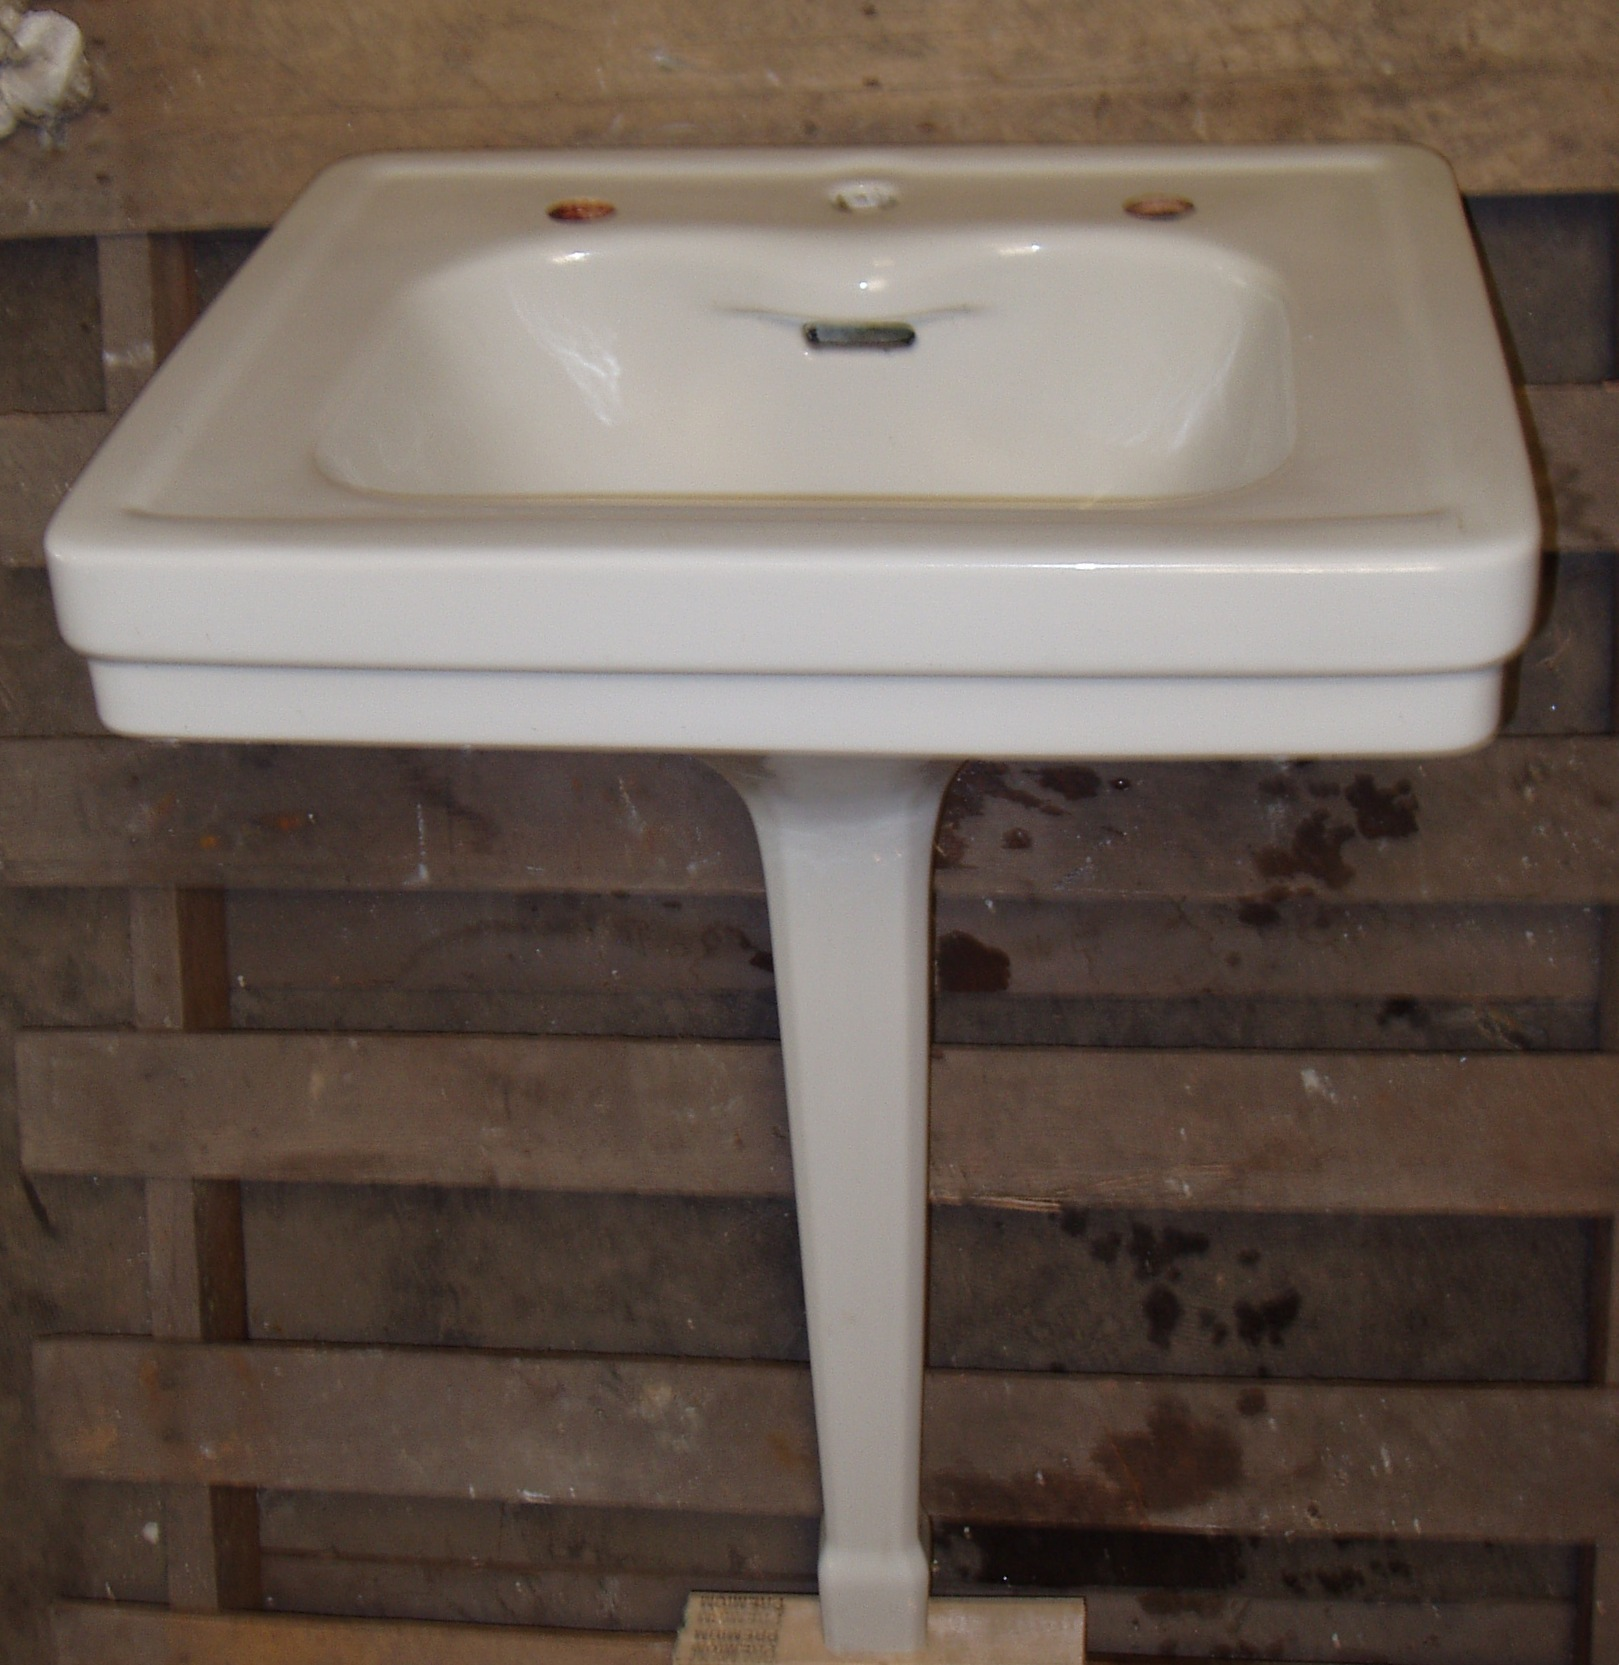 lavatory home plumbing pedestal depot small modern vintage sink for